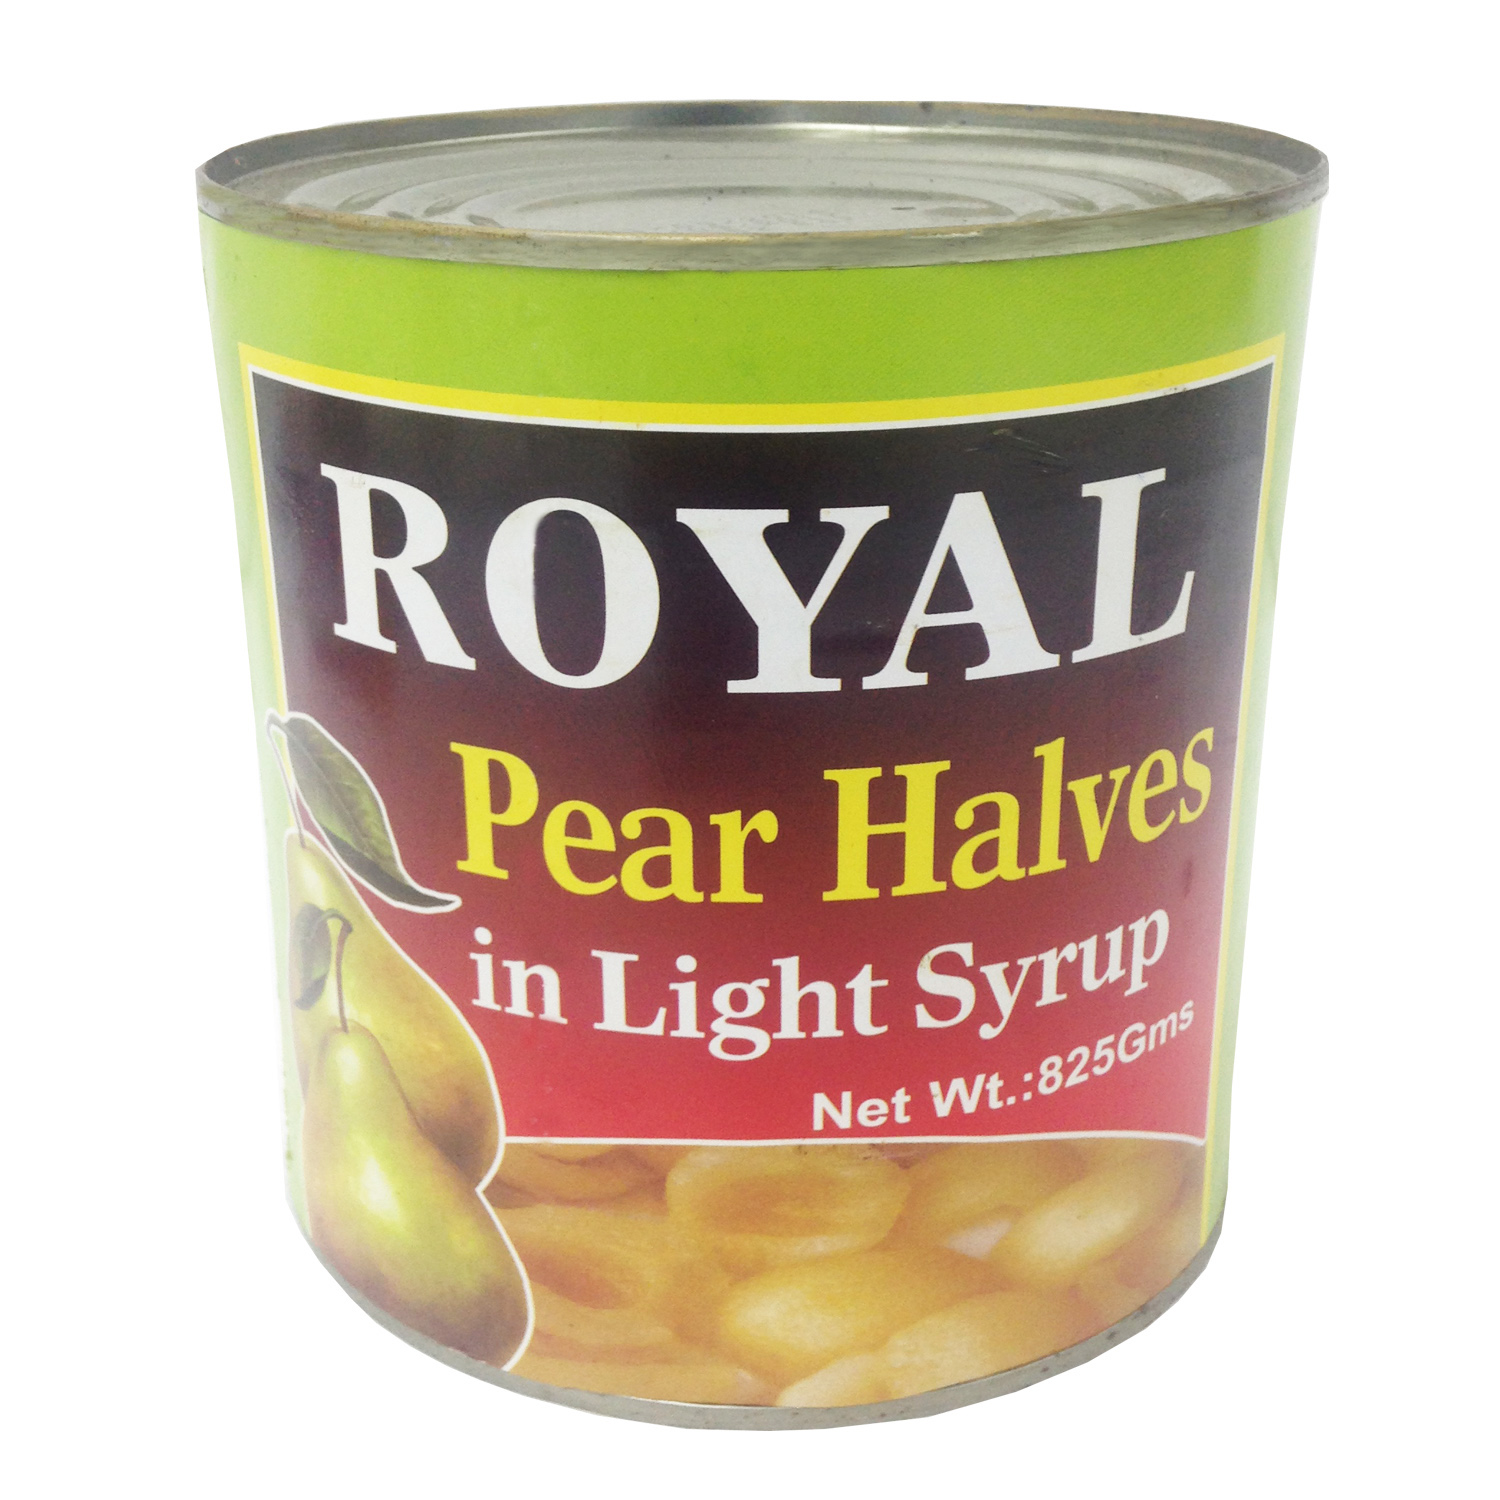 Royal Pear Halves